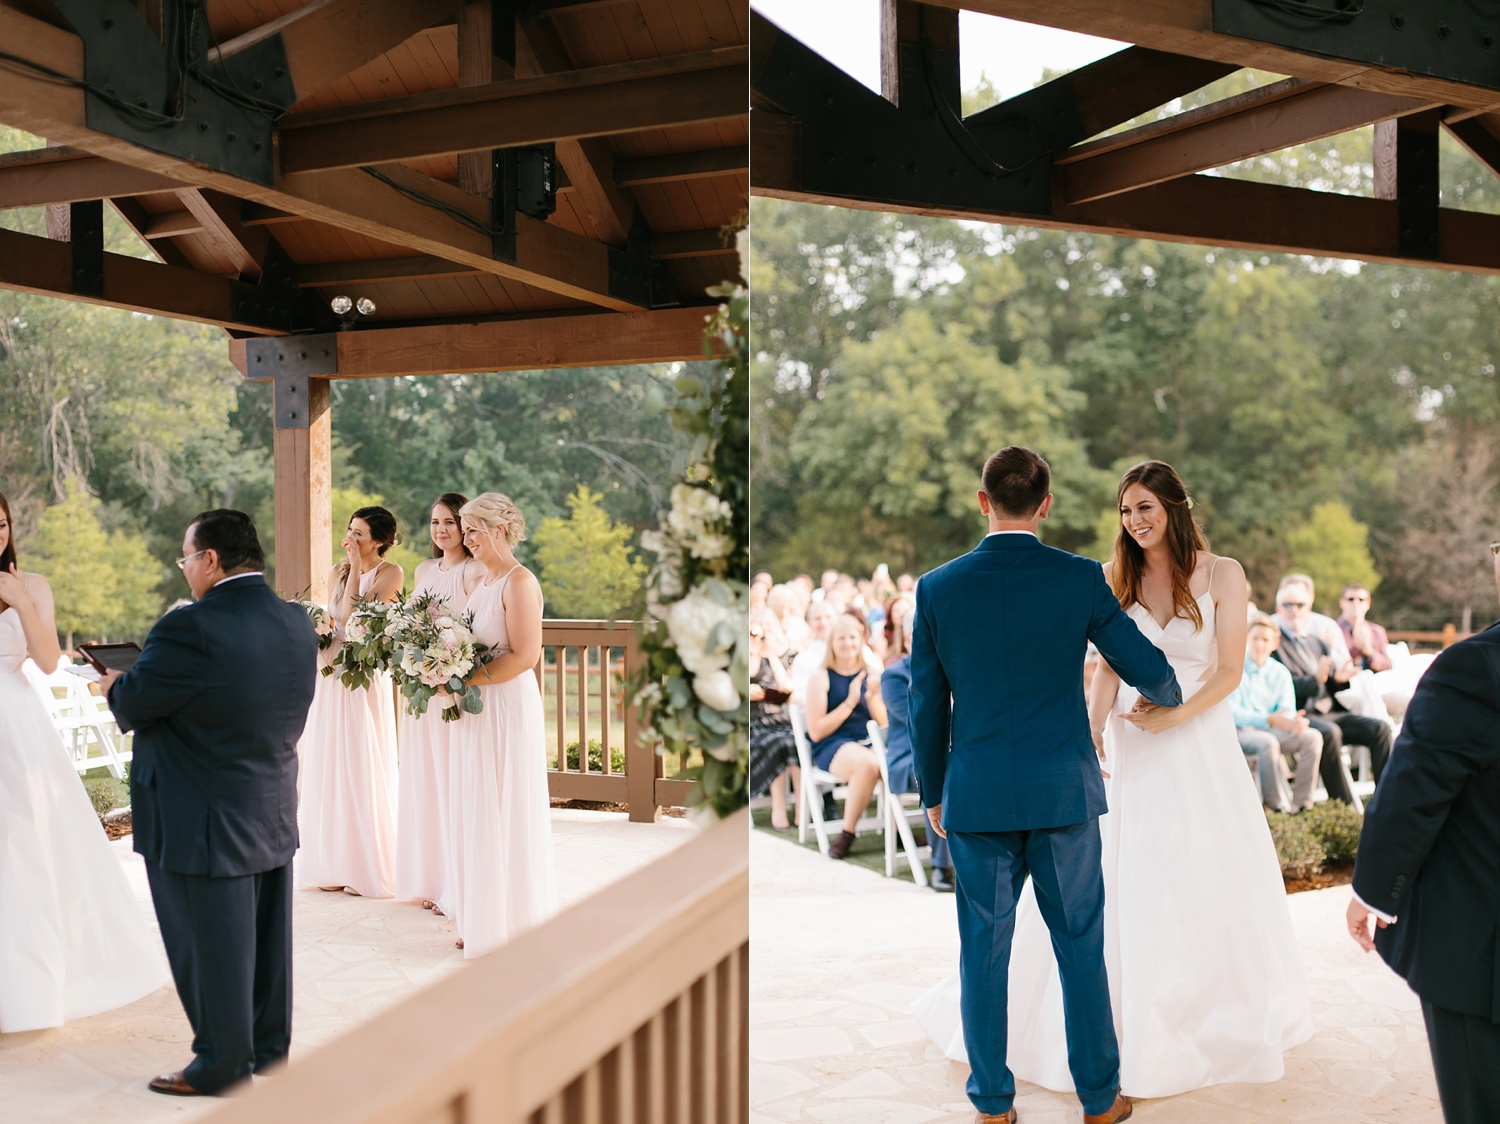 Aleta + Sabian a blush pink and navy blue wedding at The Springs in Anna, TX by North Texas Wedding Photographer _ Rachel Meagan Photography _ 059